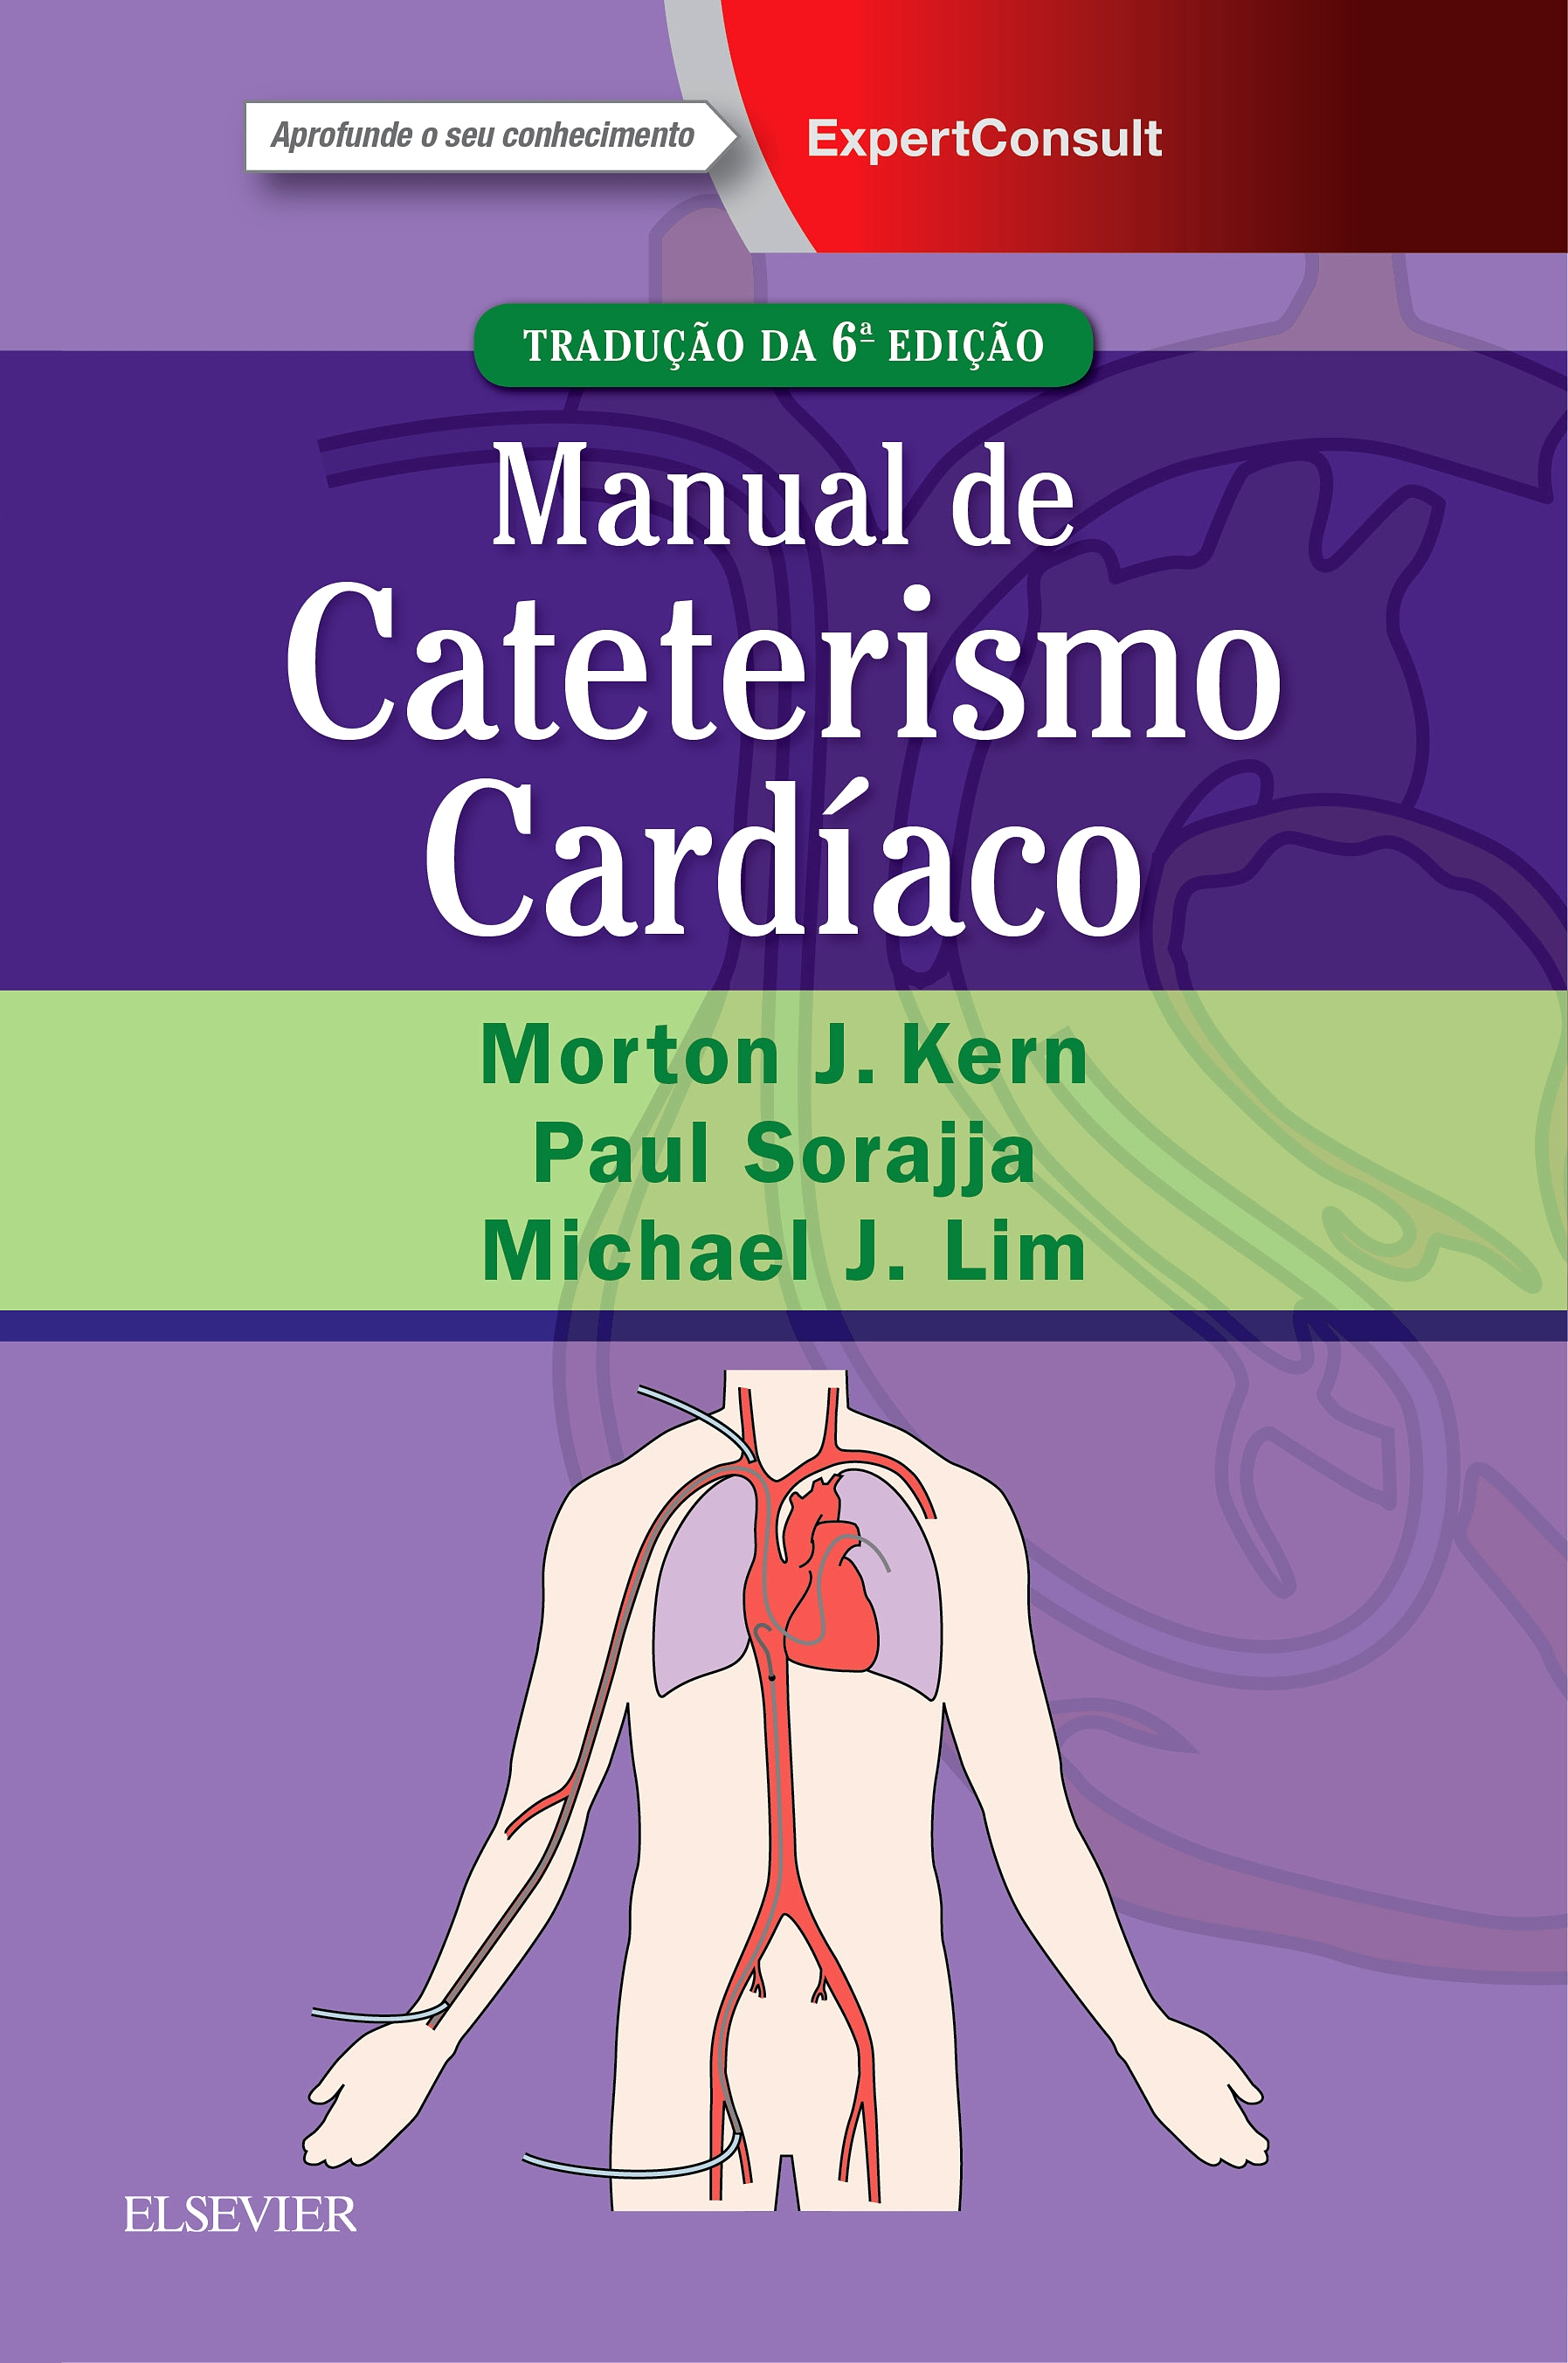 Manual de Cateterismo Cardíaco